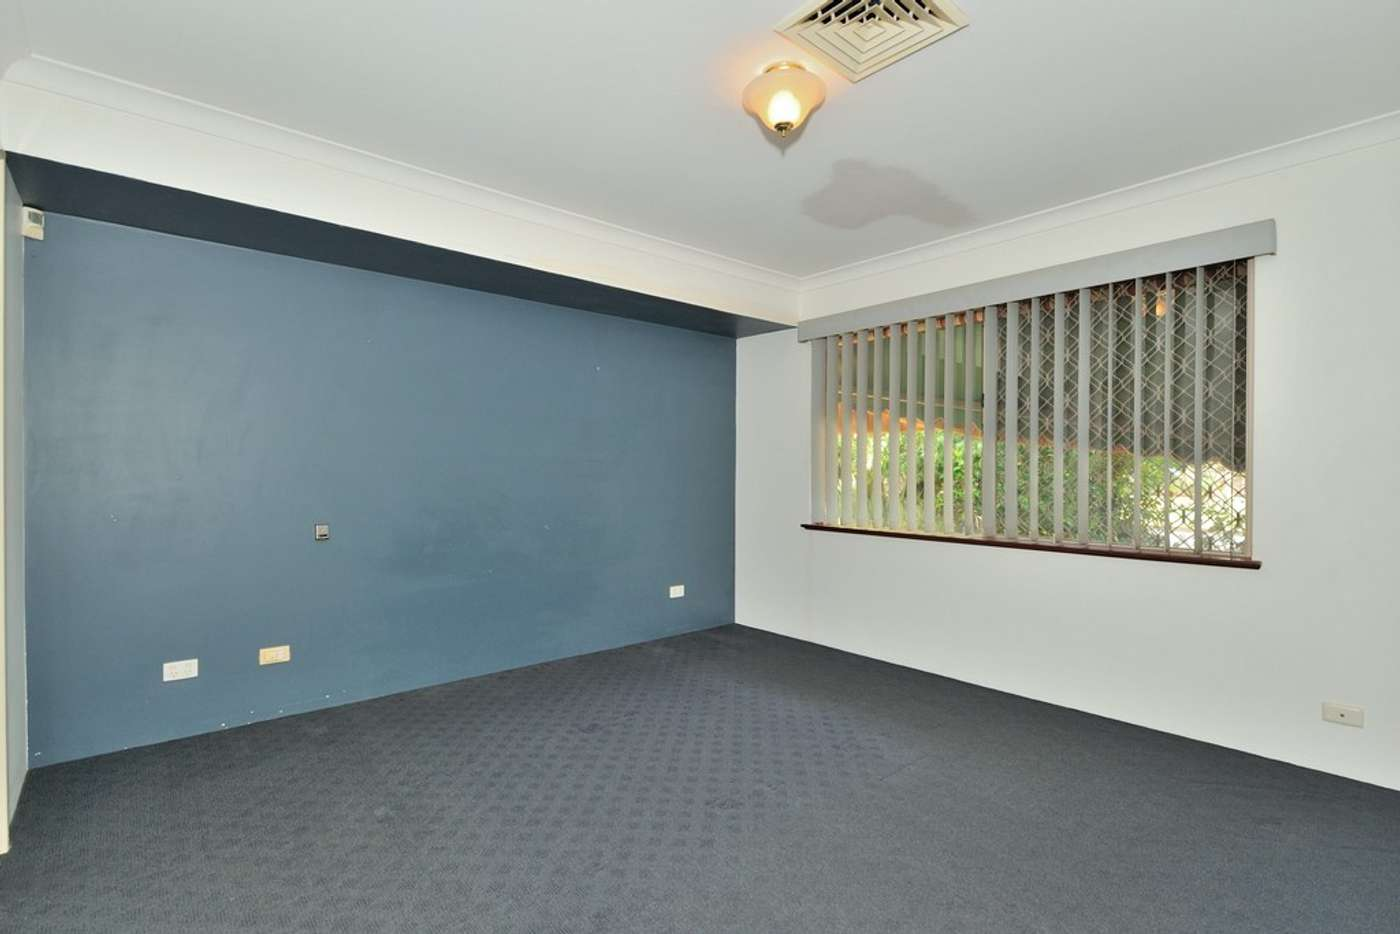 Sixth view of Homely house listing, 16 Seacom Ct, Morley WA 6062